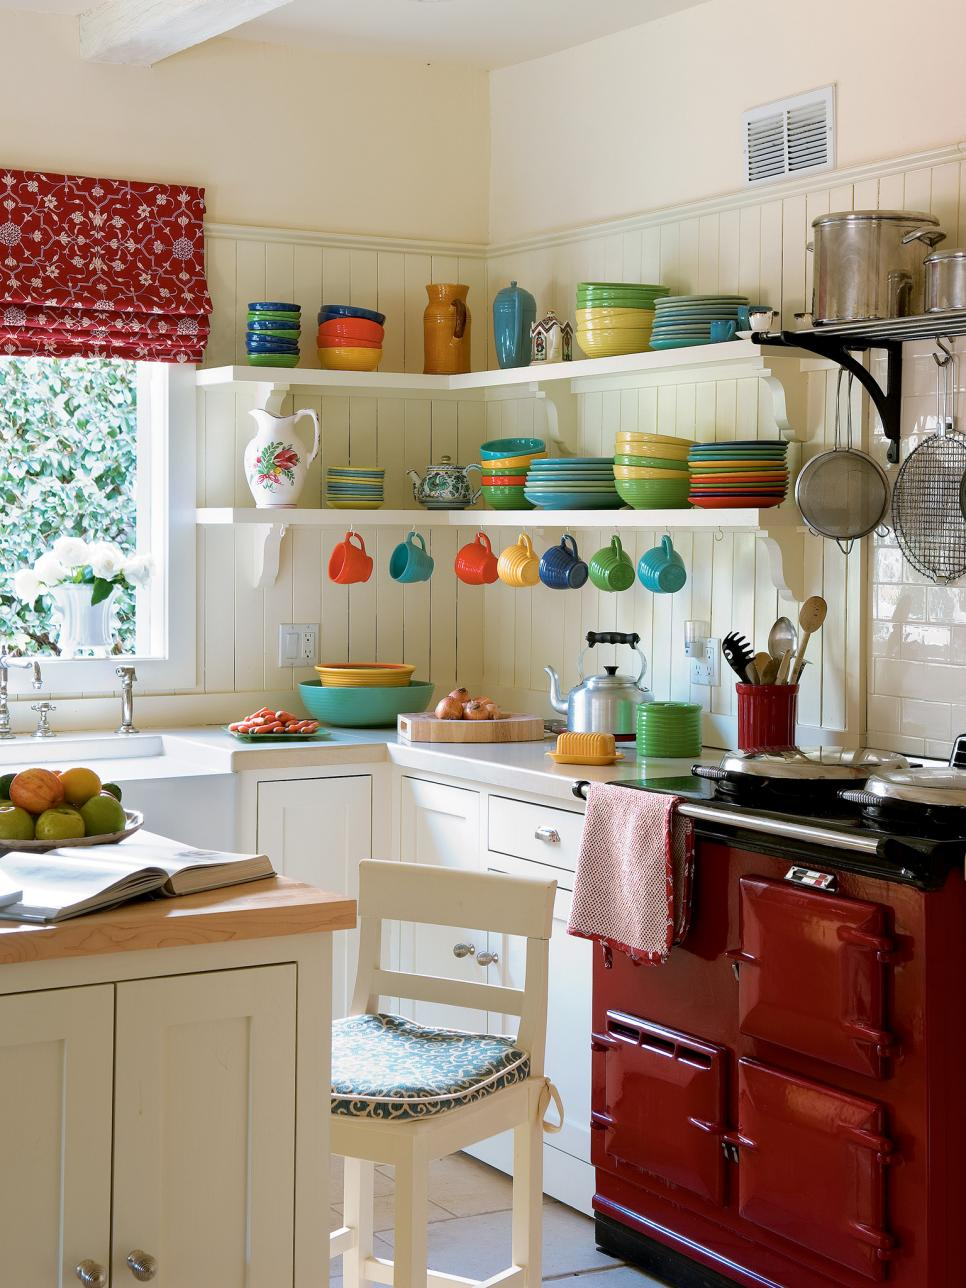 Kitchen Remodel Pictures Ideas Pictures Of Small Kitchen Design Ideas From Hgtv  Hgtv